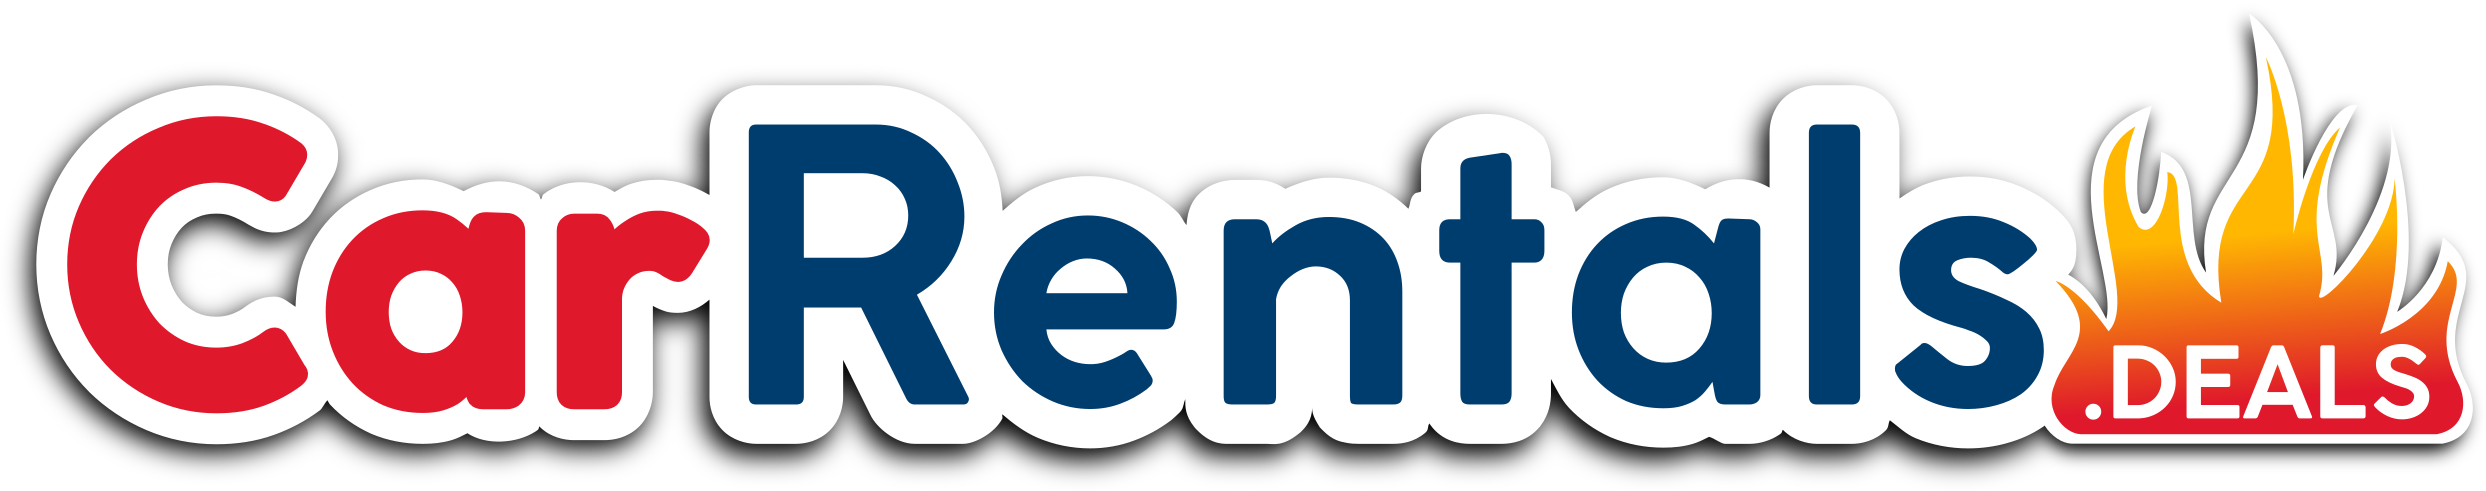 carrentals-deals-logo-big-png